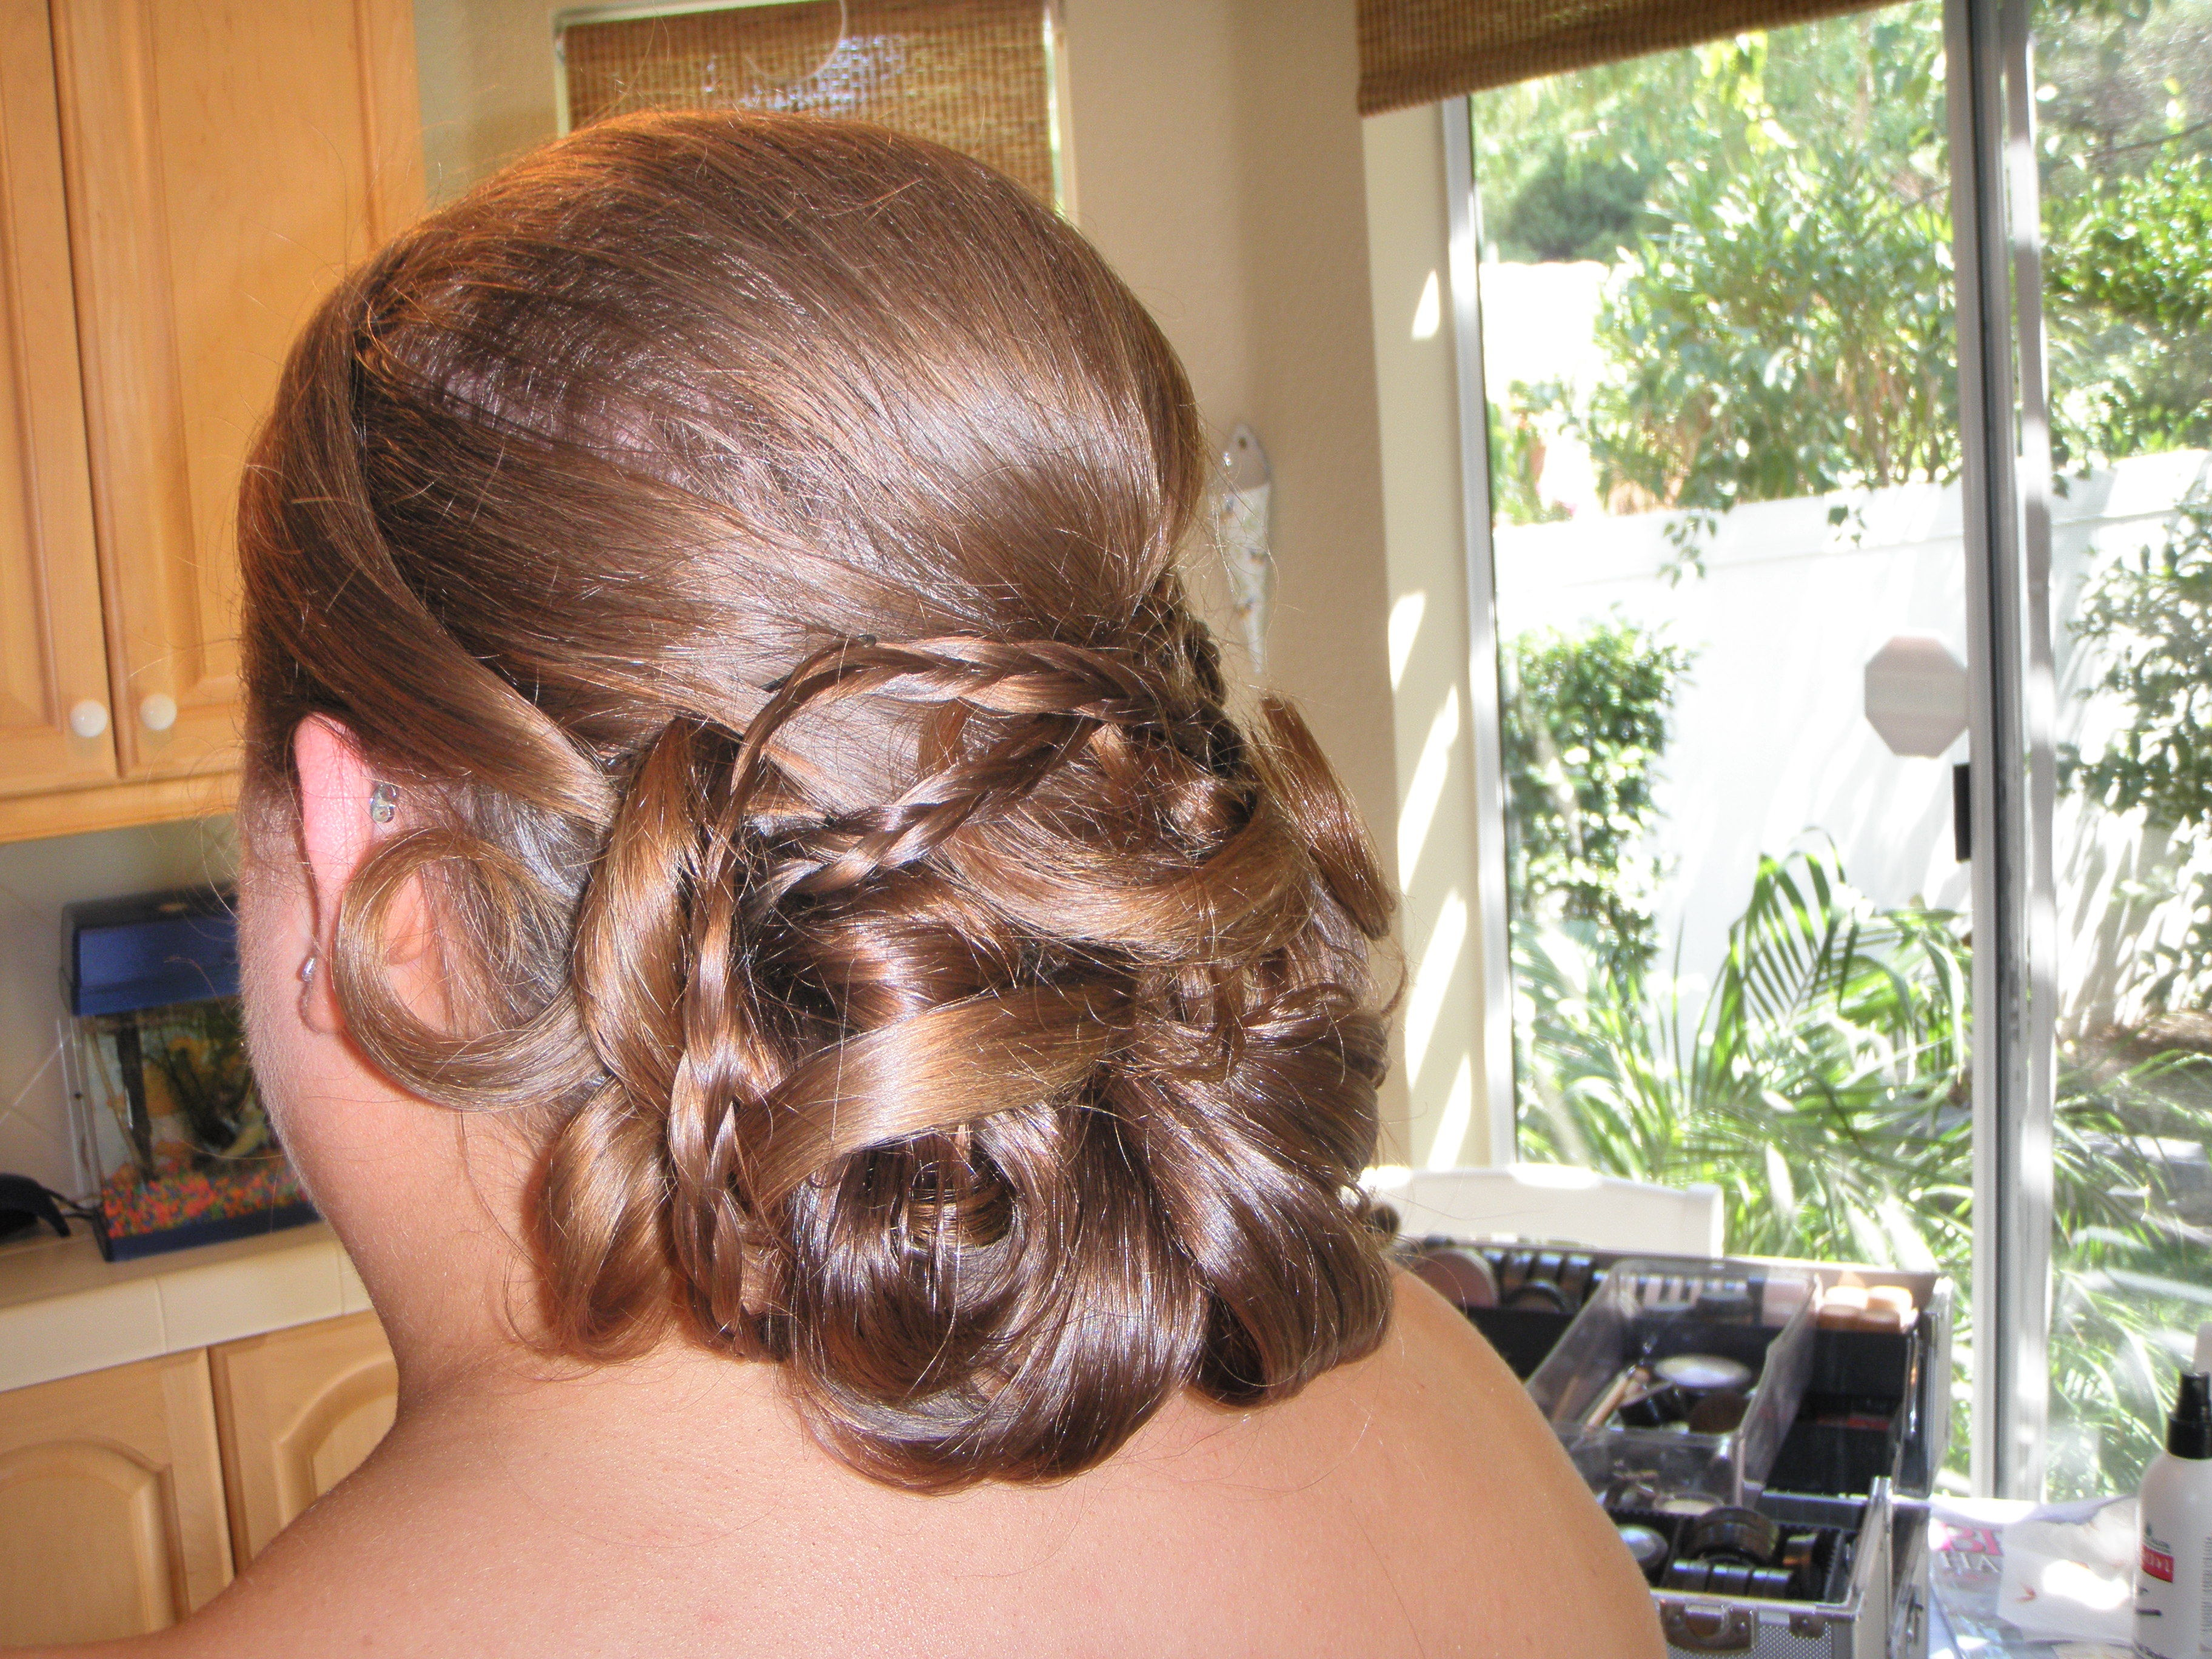 Beauty, Chignon, Low, Bridesmaid, Hair, Dark, Braids, Up-do